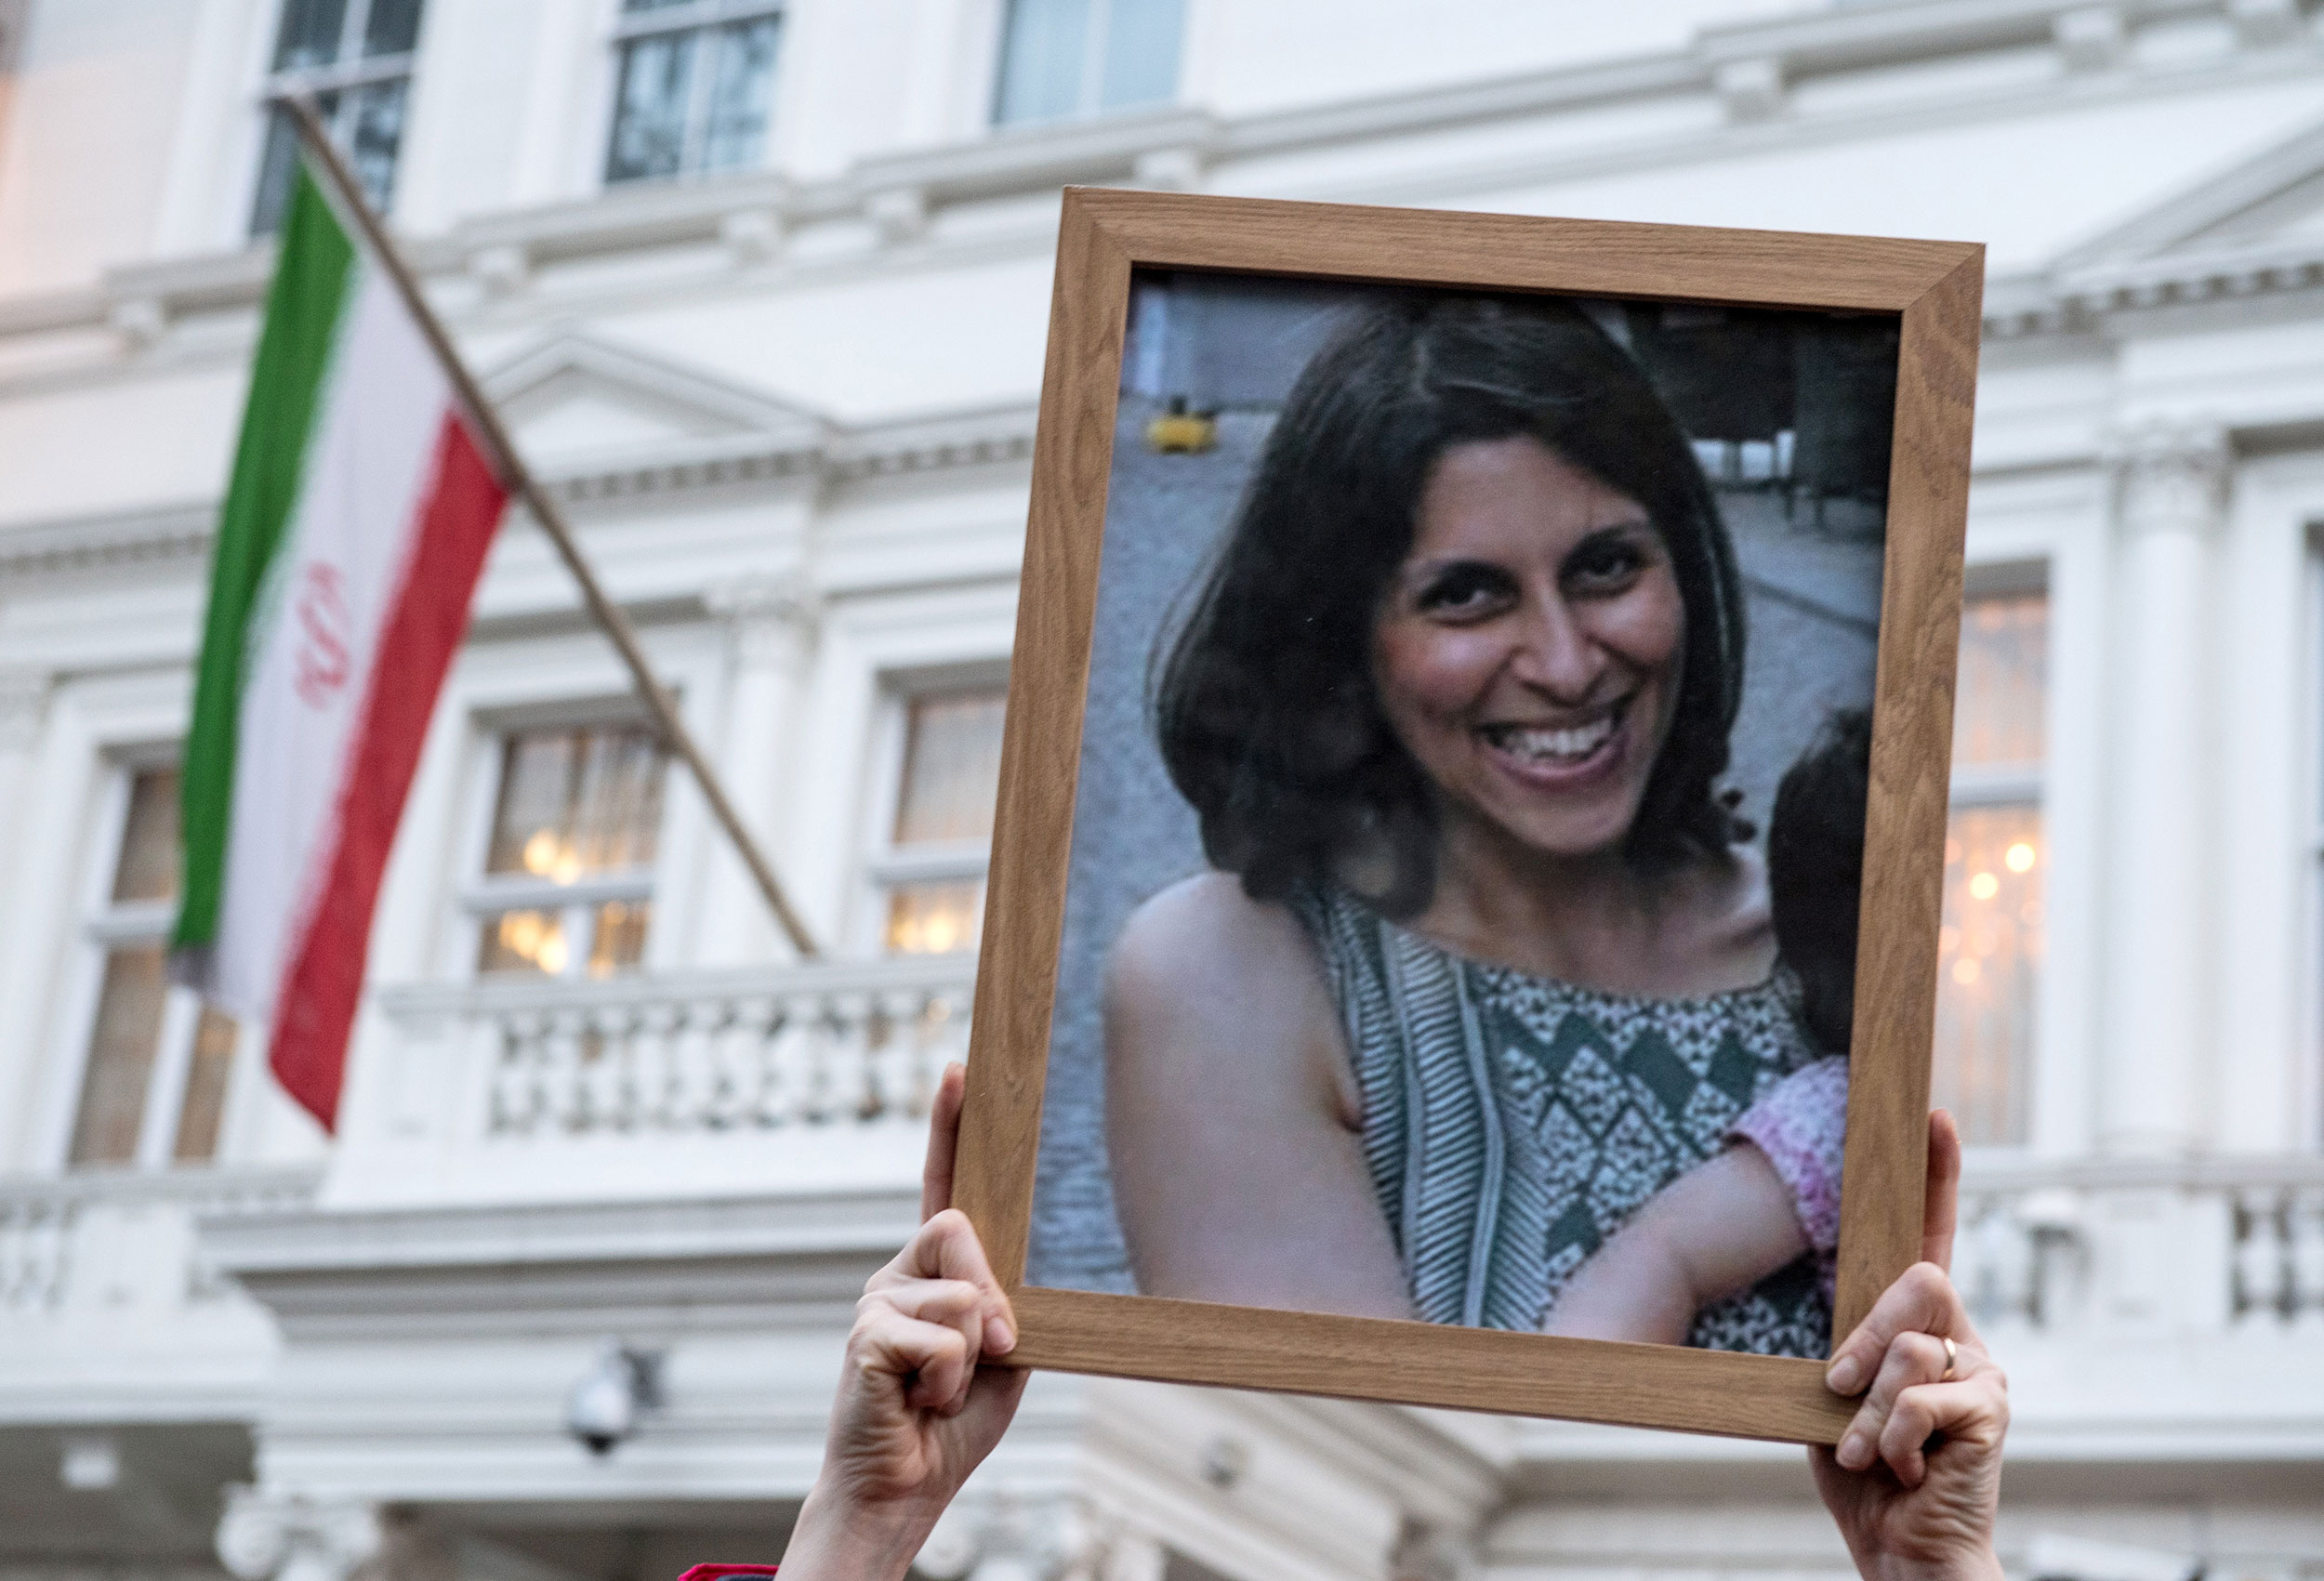 A person holds up a photo of Nazanin Zaghari-Ratcliffe during a vigil in London, England on January 16, 2017.